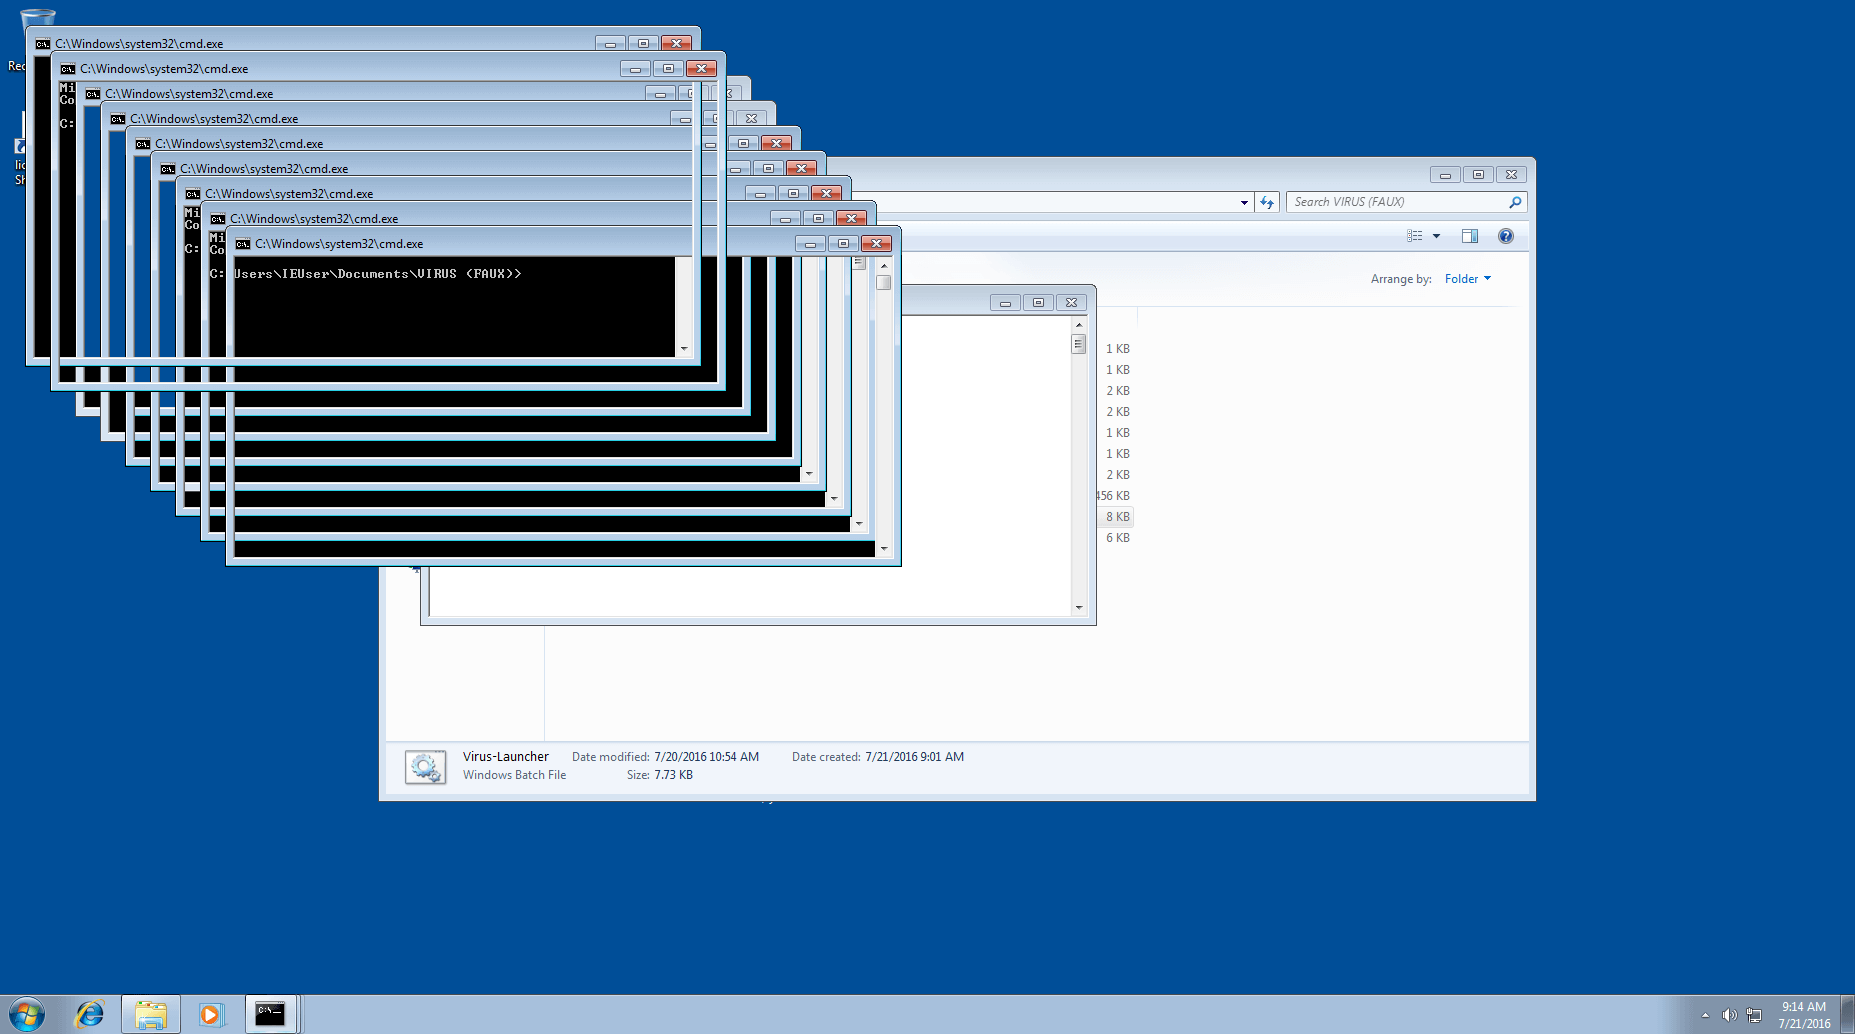 The fake virus Infinite windows